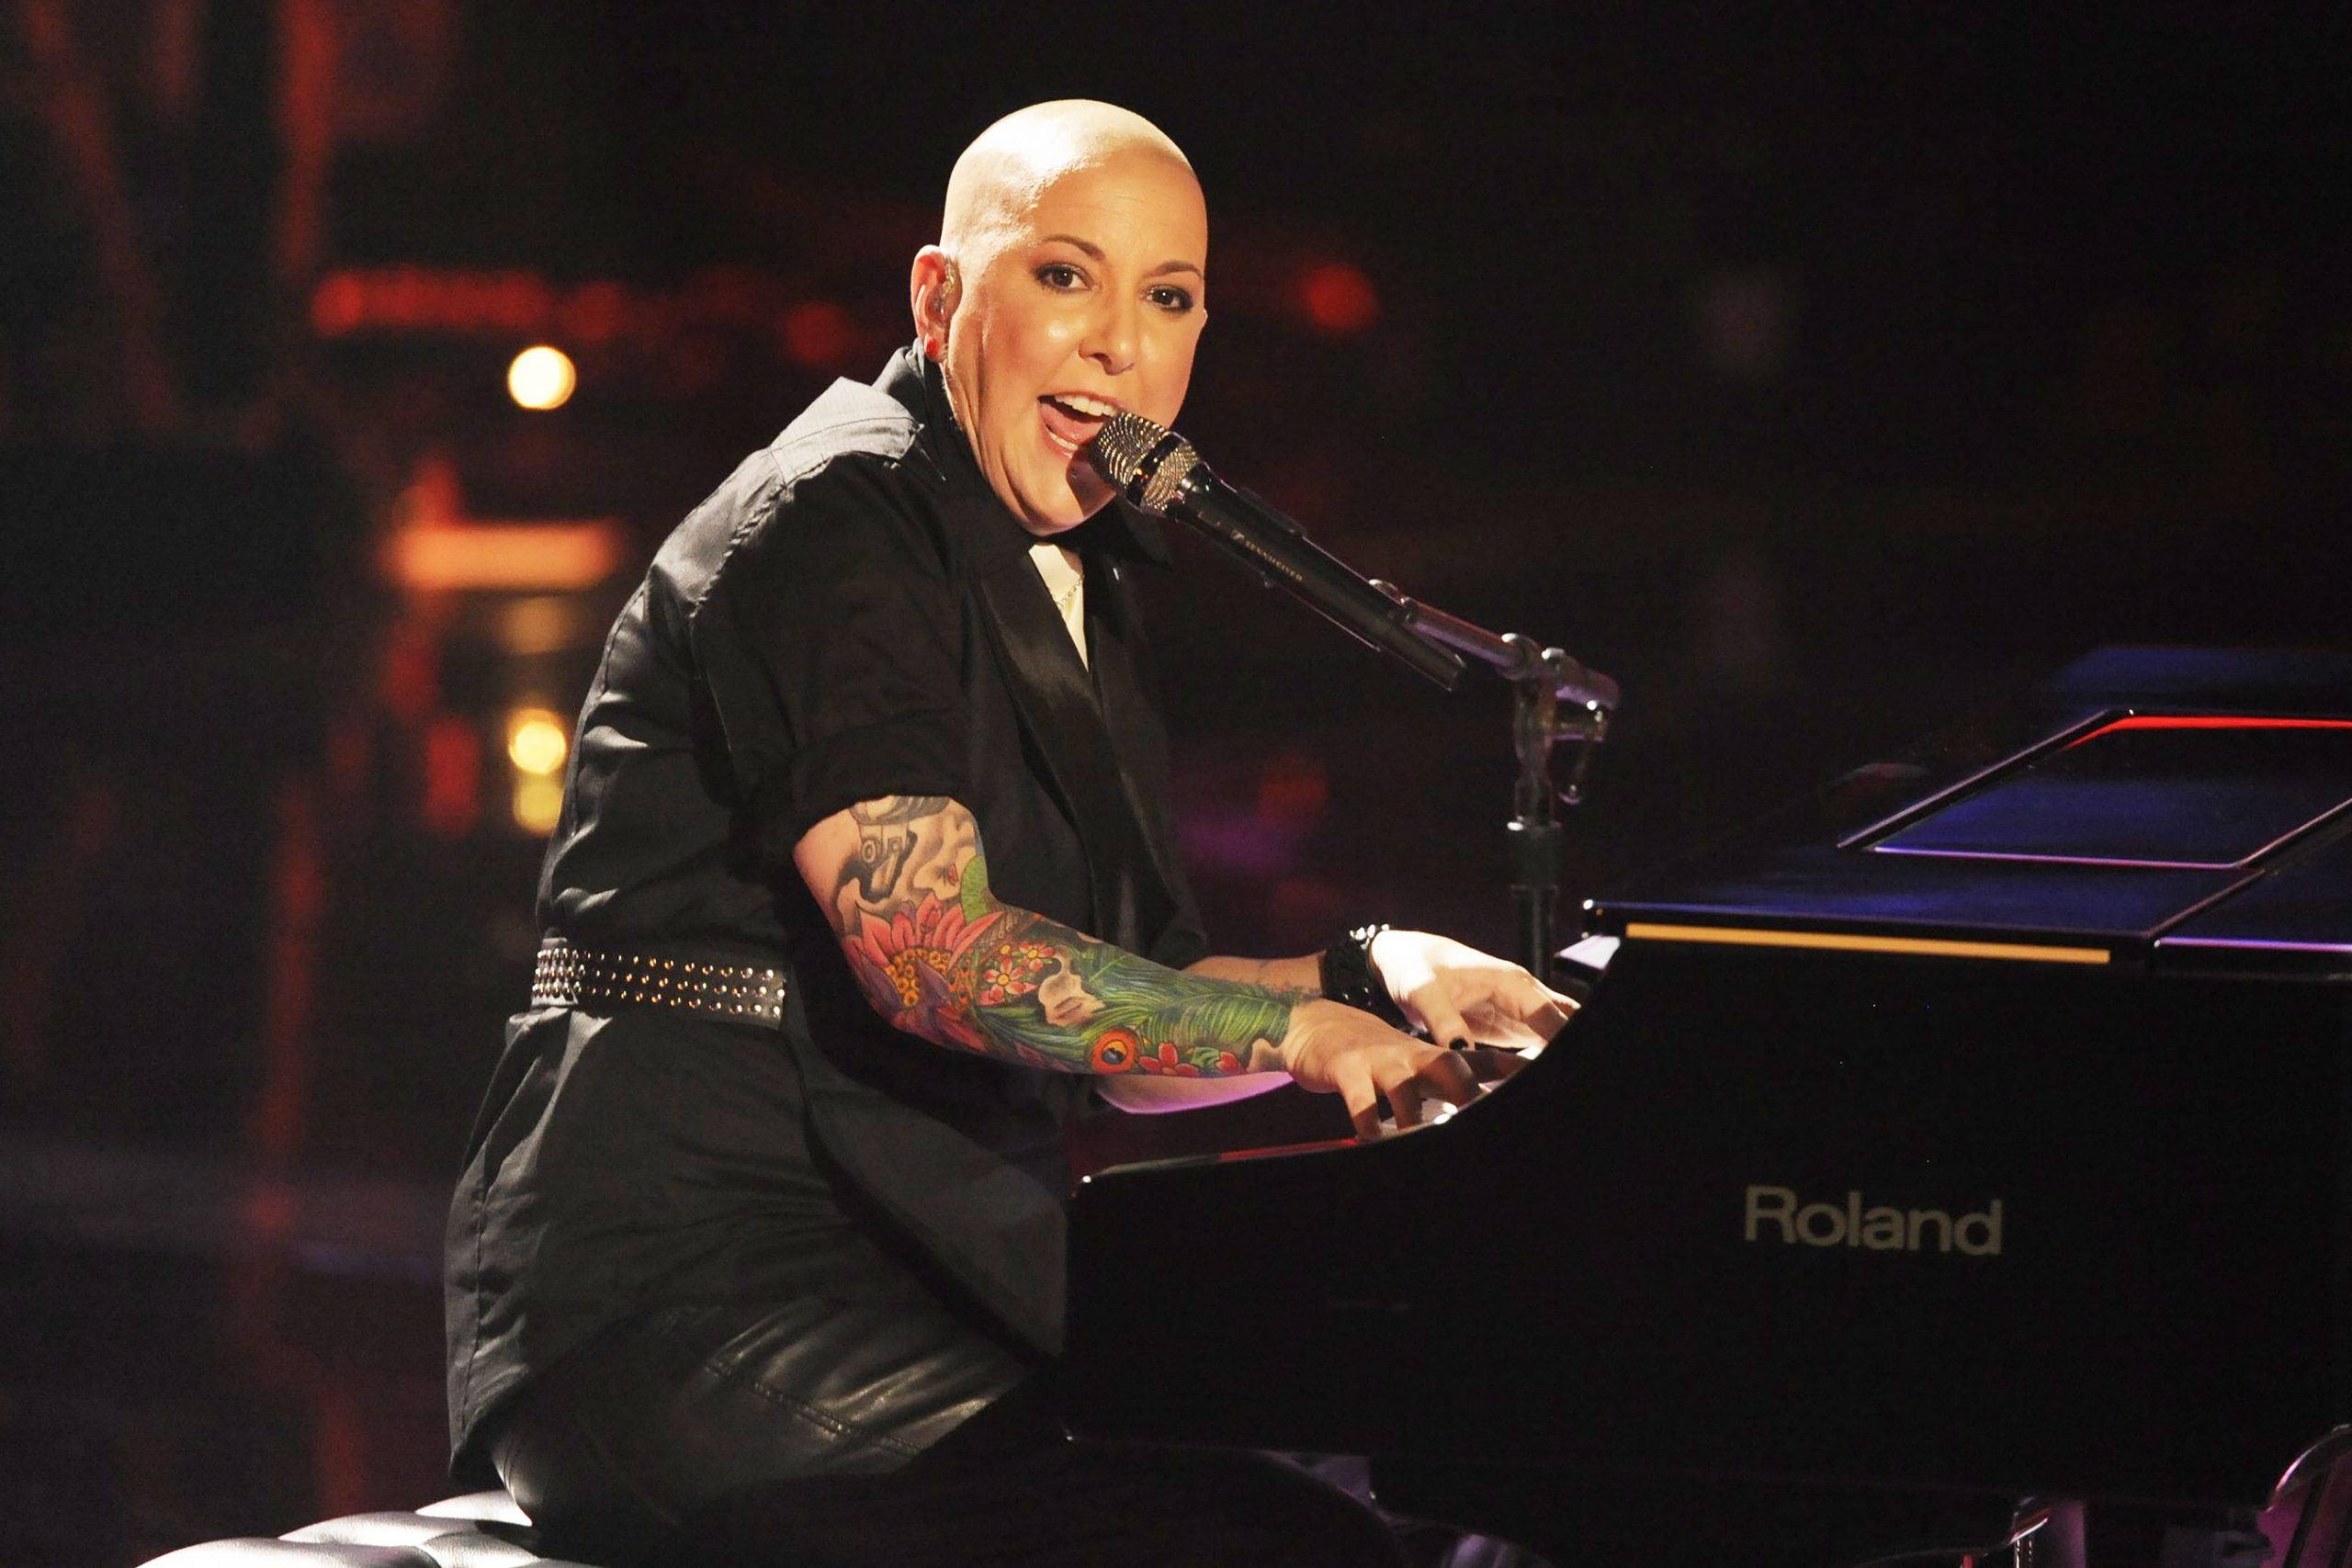 THE VOICE Star Beverly McClellan Dies of Cancer at 49